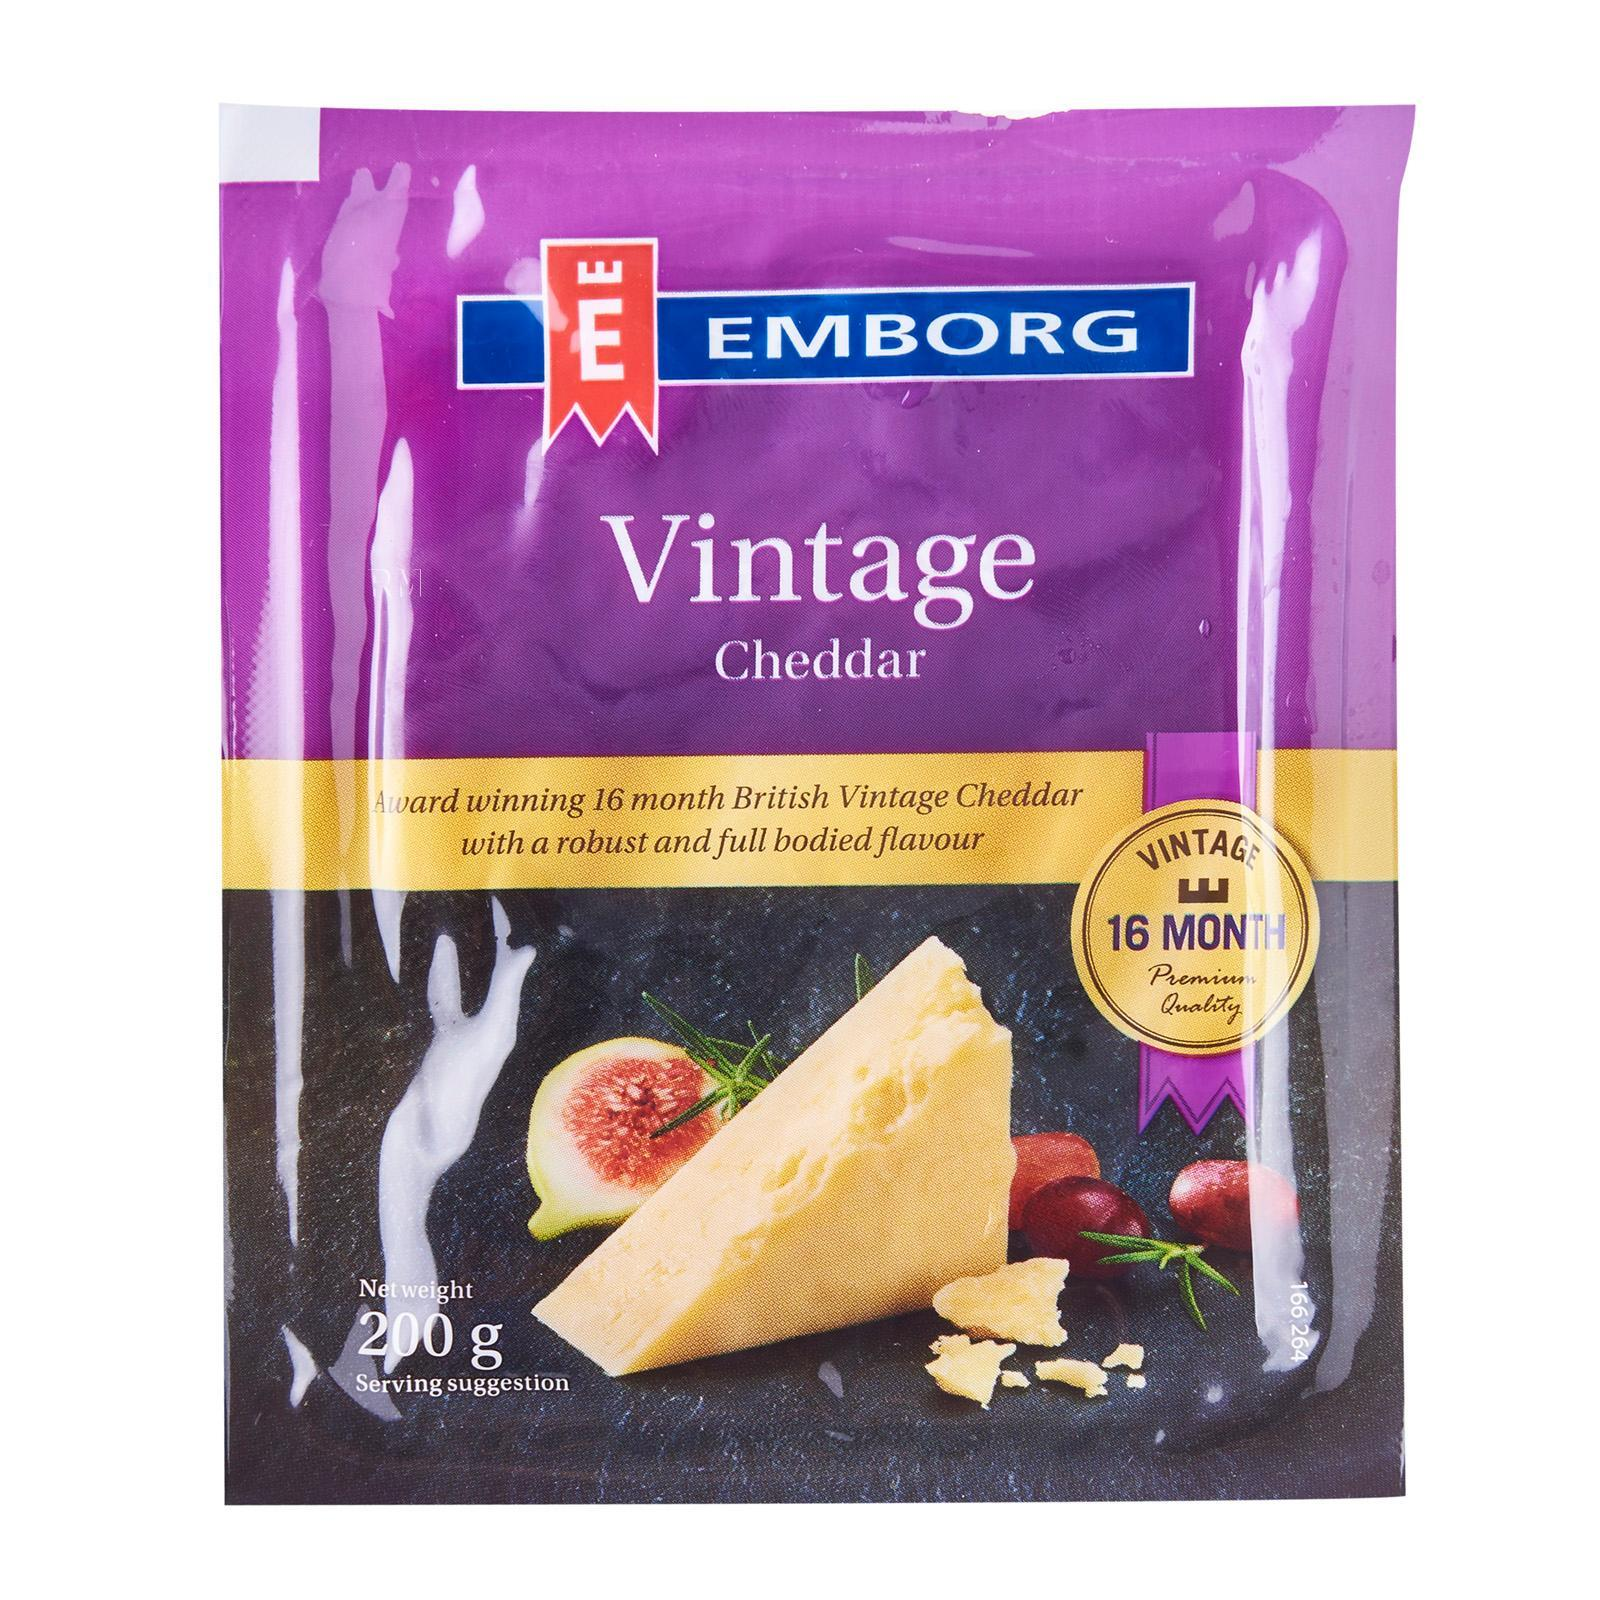 Emborg Vintage Cheddar Cheese